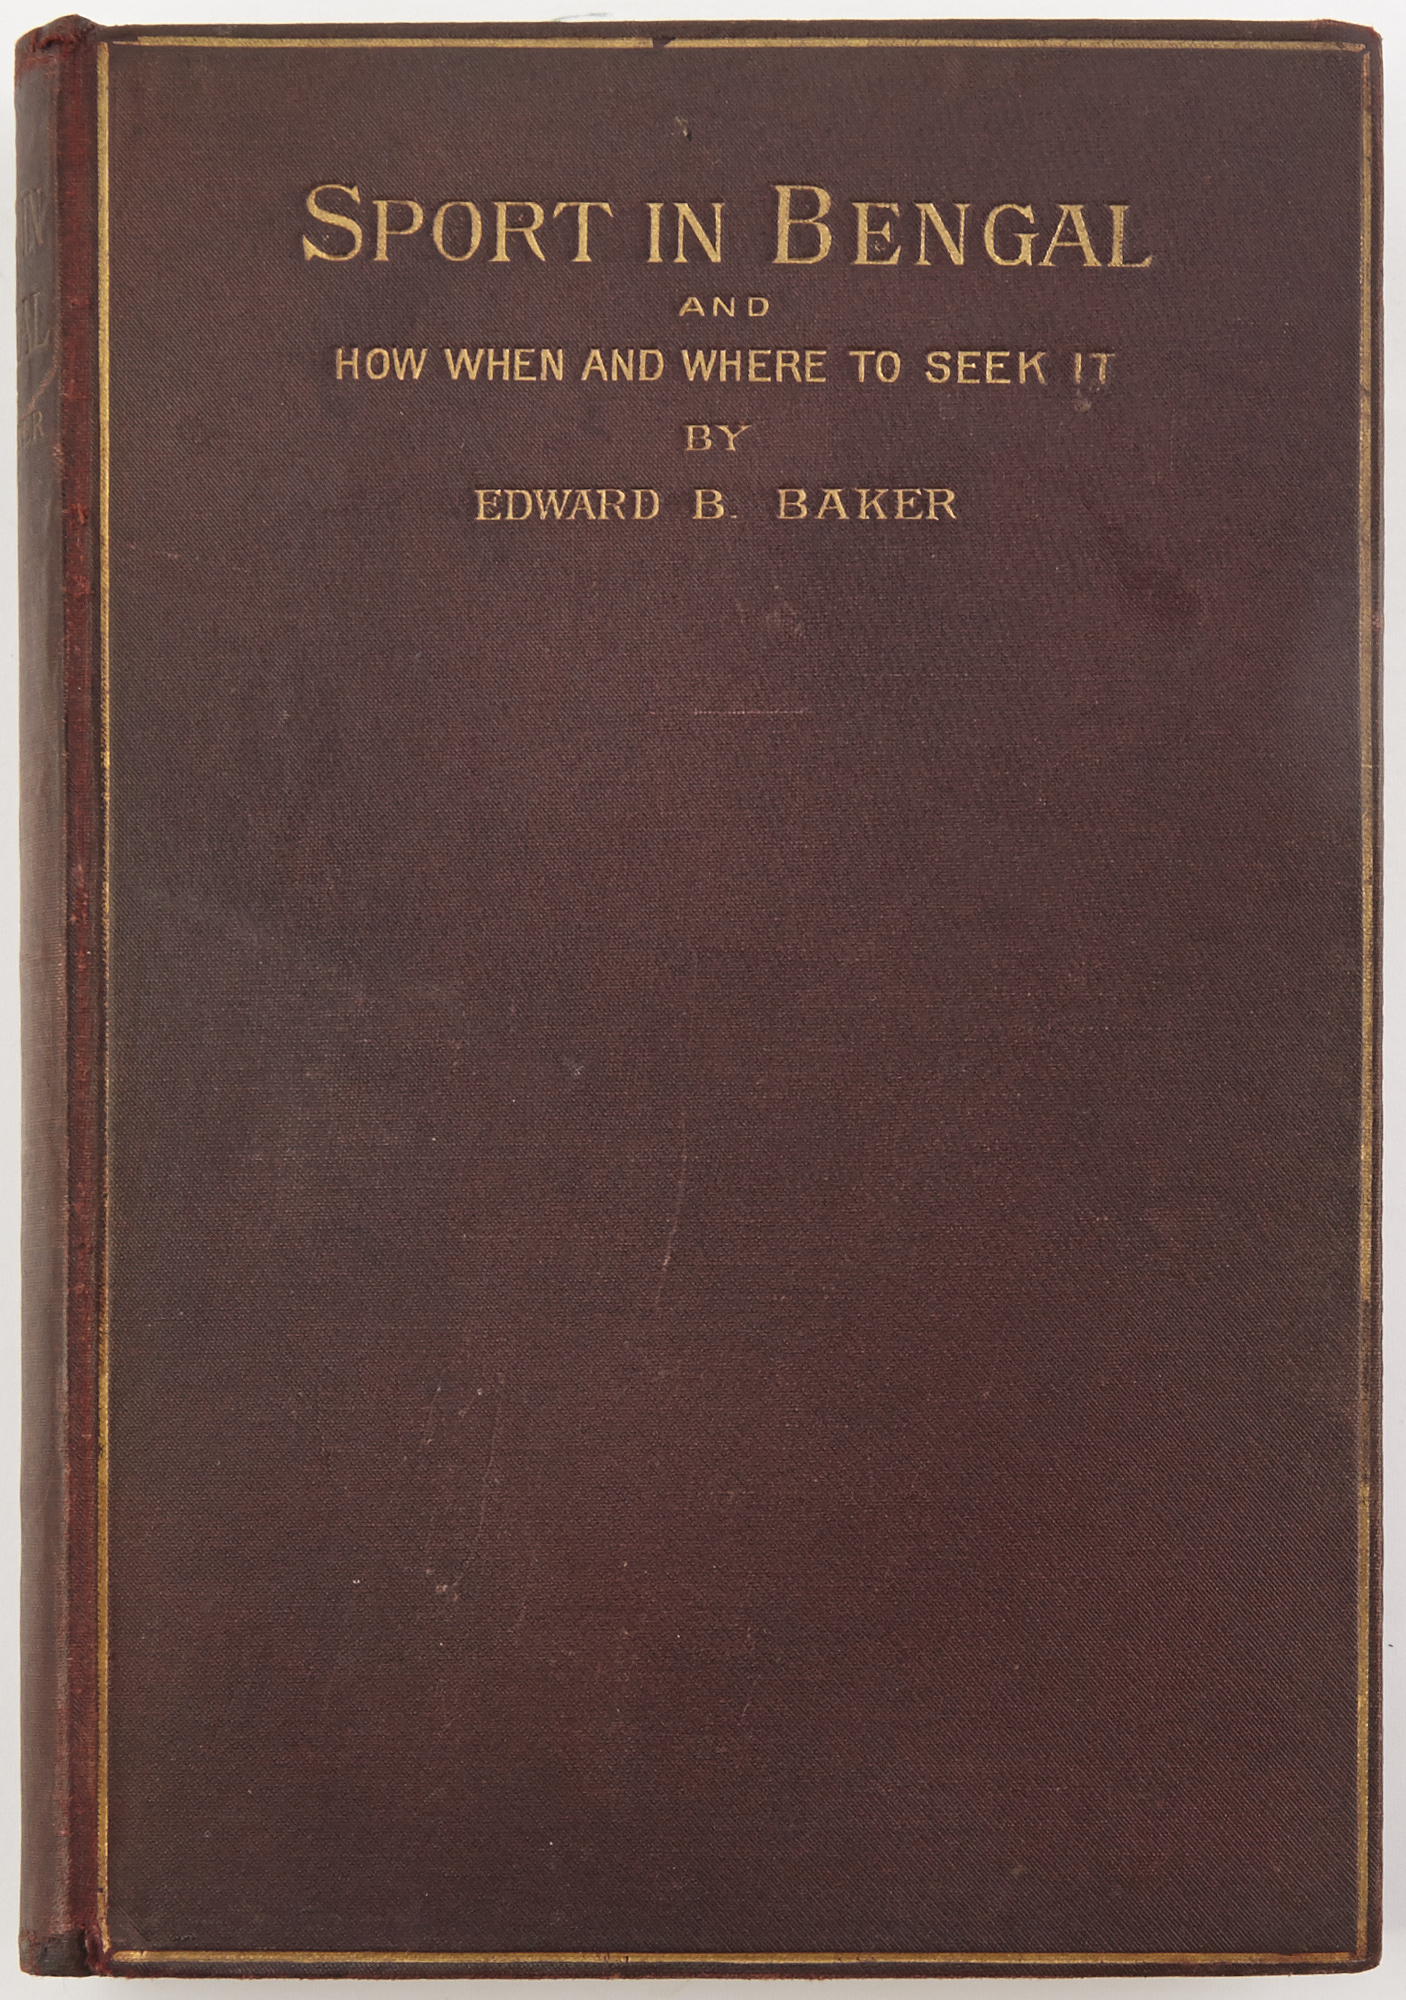 Lot image - BAKER, EDWARD B.  Sport in Bengal and How, When, and Where to Seek It.